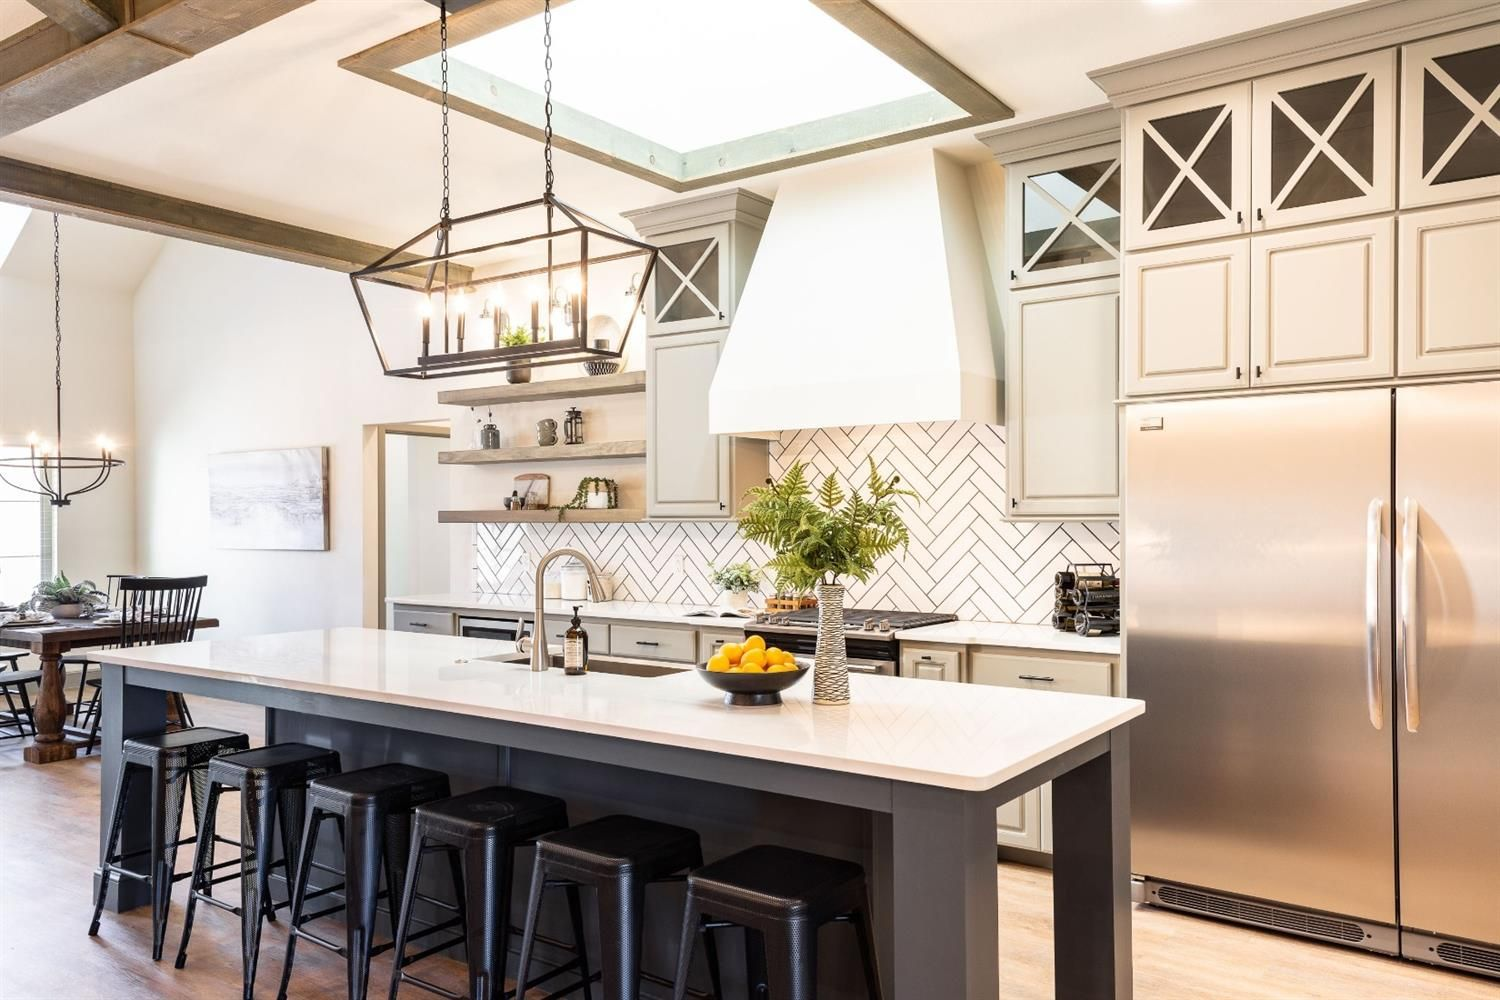 New Homes For Sale In Lubbock Tx Kitchen Remodel Ventura Homes Kitchen Decor